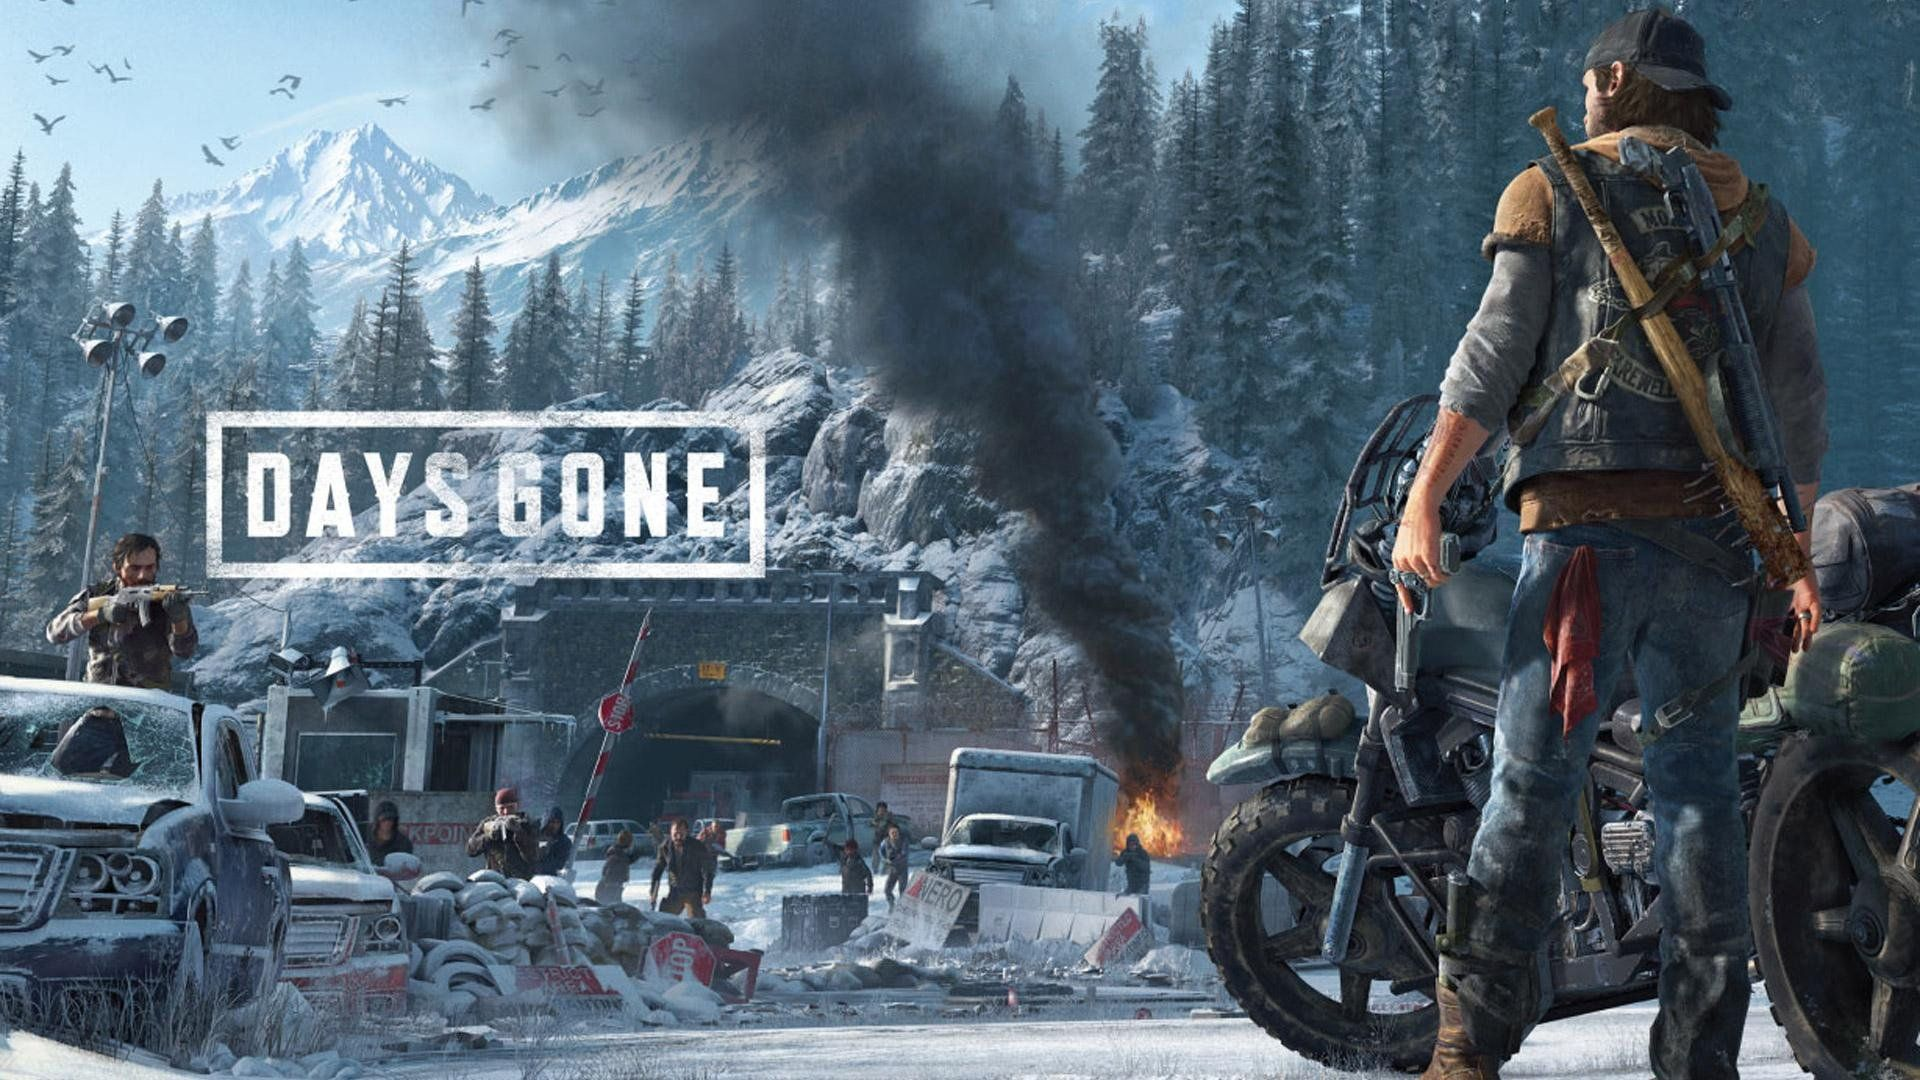 Days Gone 4K Wallpapers - Top Free Days Gone 4K ...